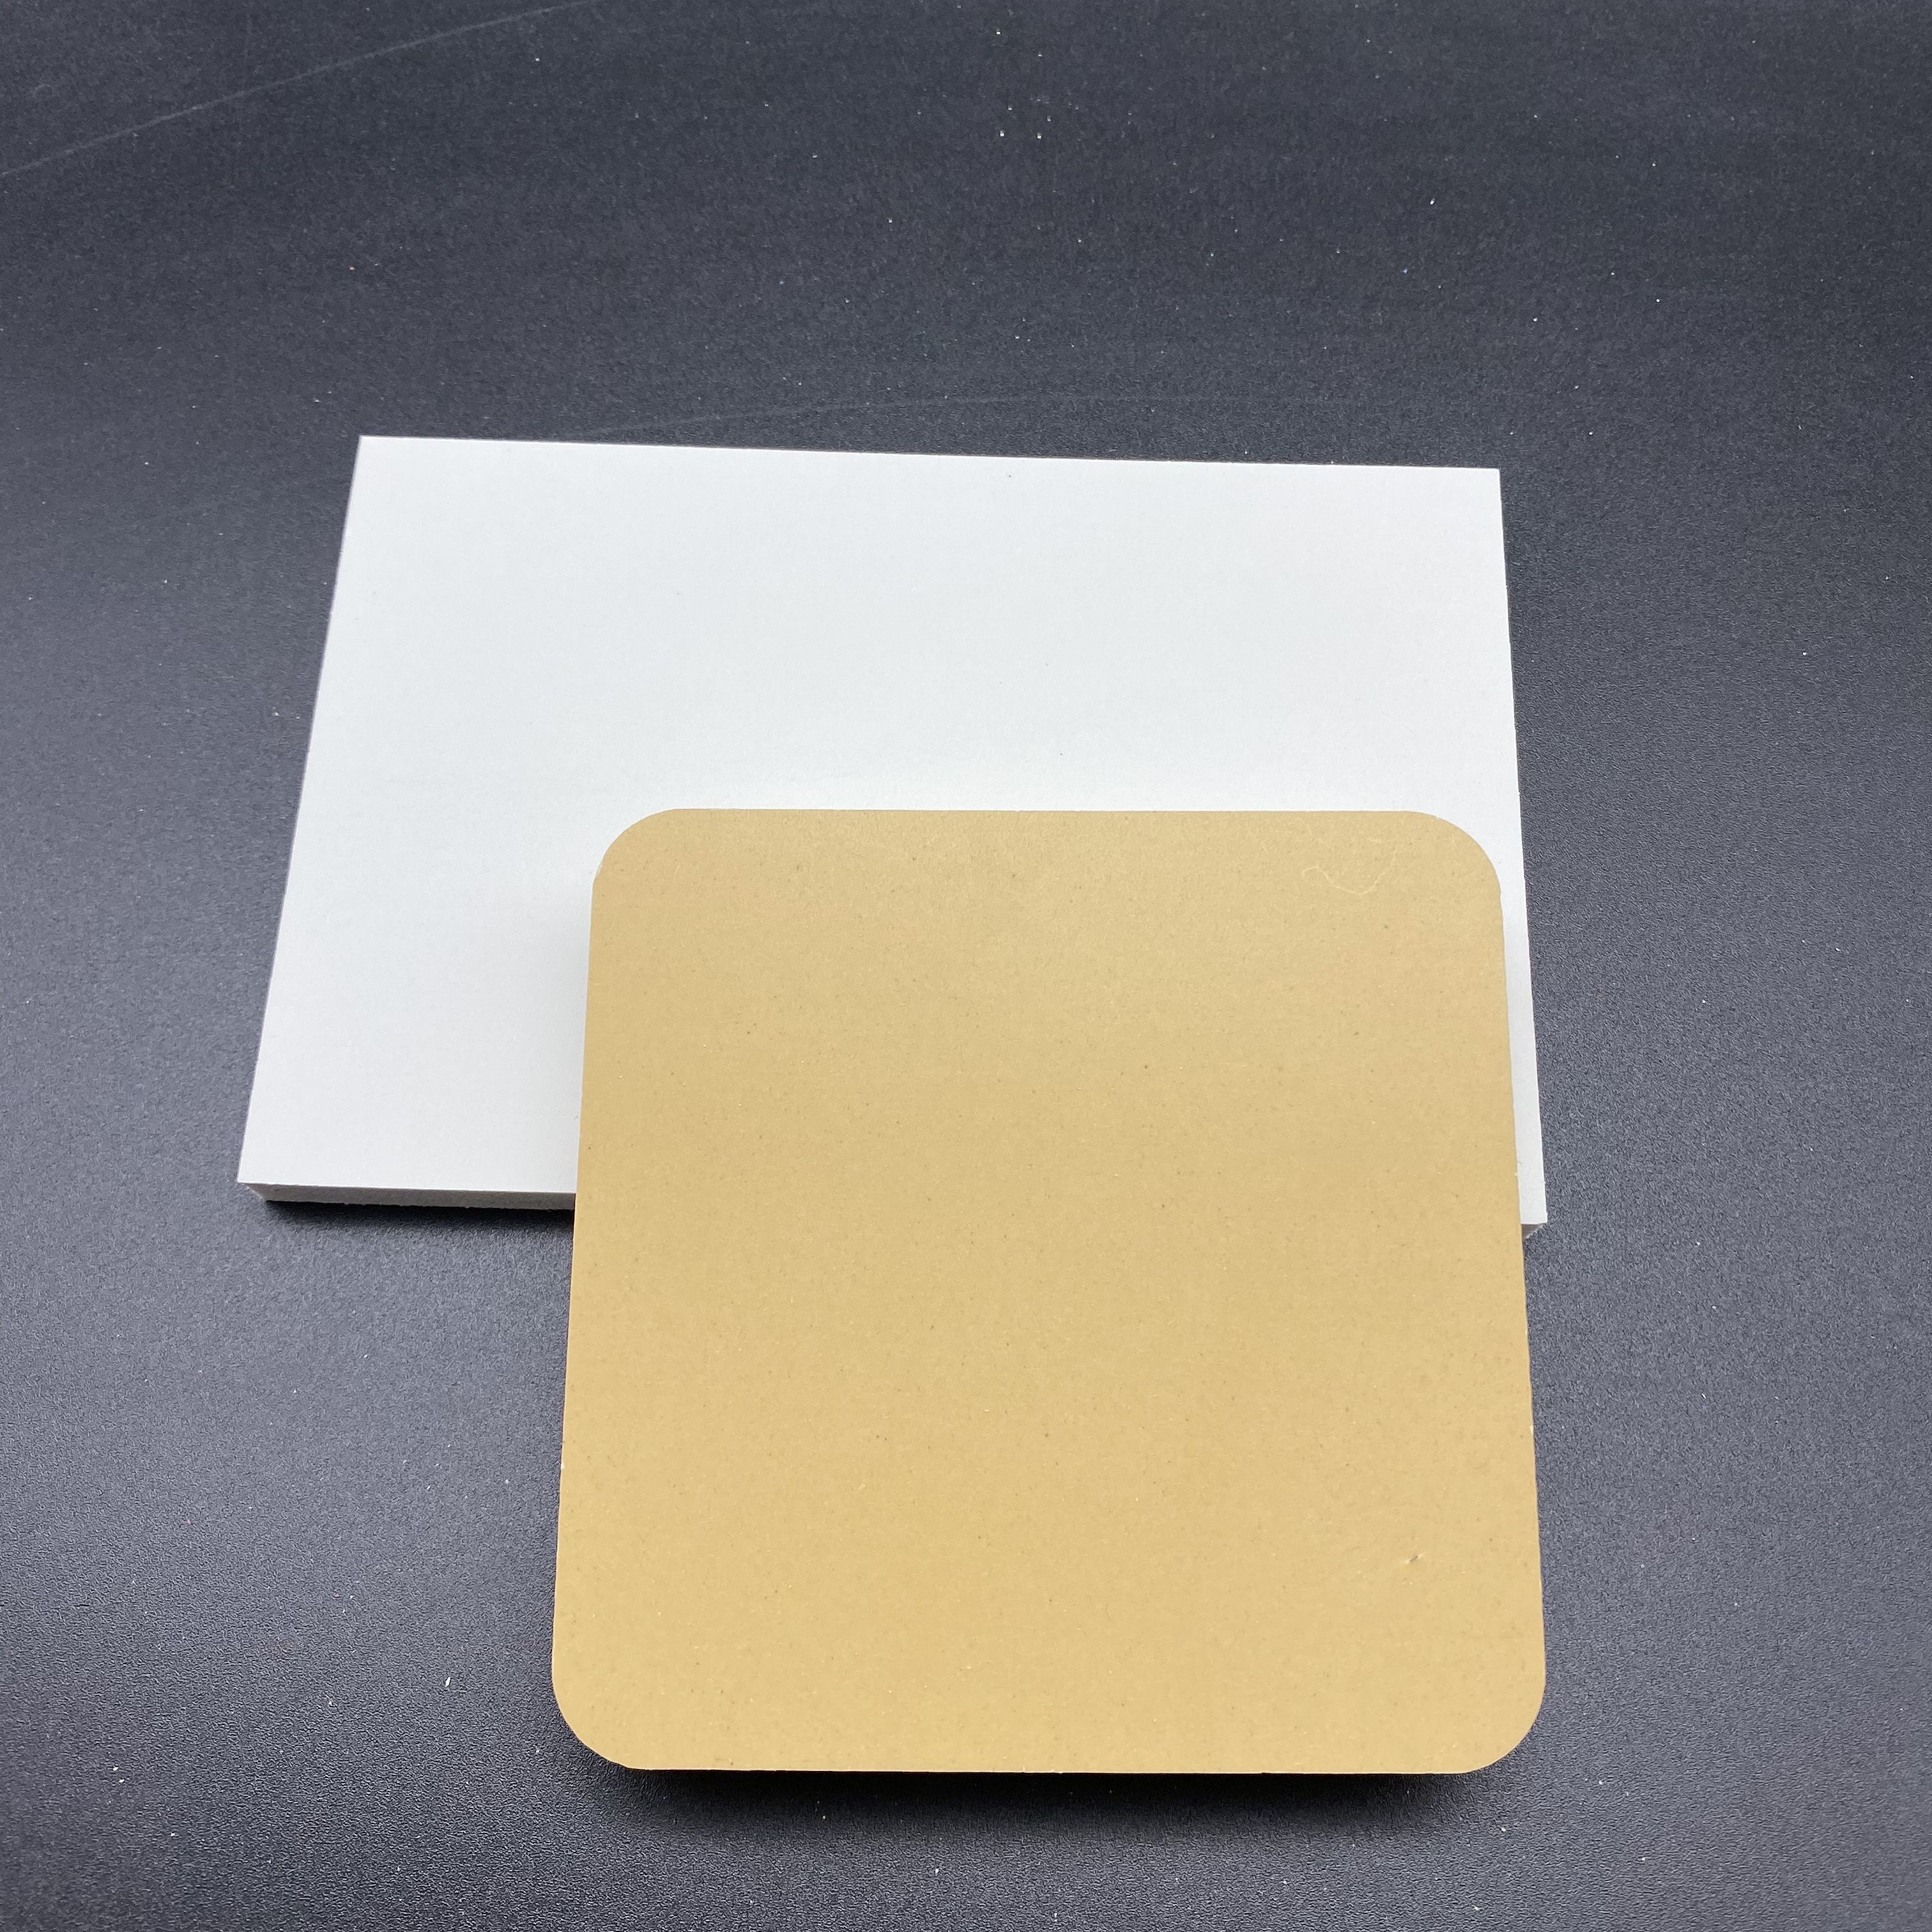 4x8 Waterproof light weight PVC Foam Board / Sheet for Bathroom/ Kitchen